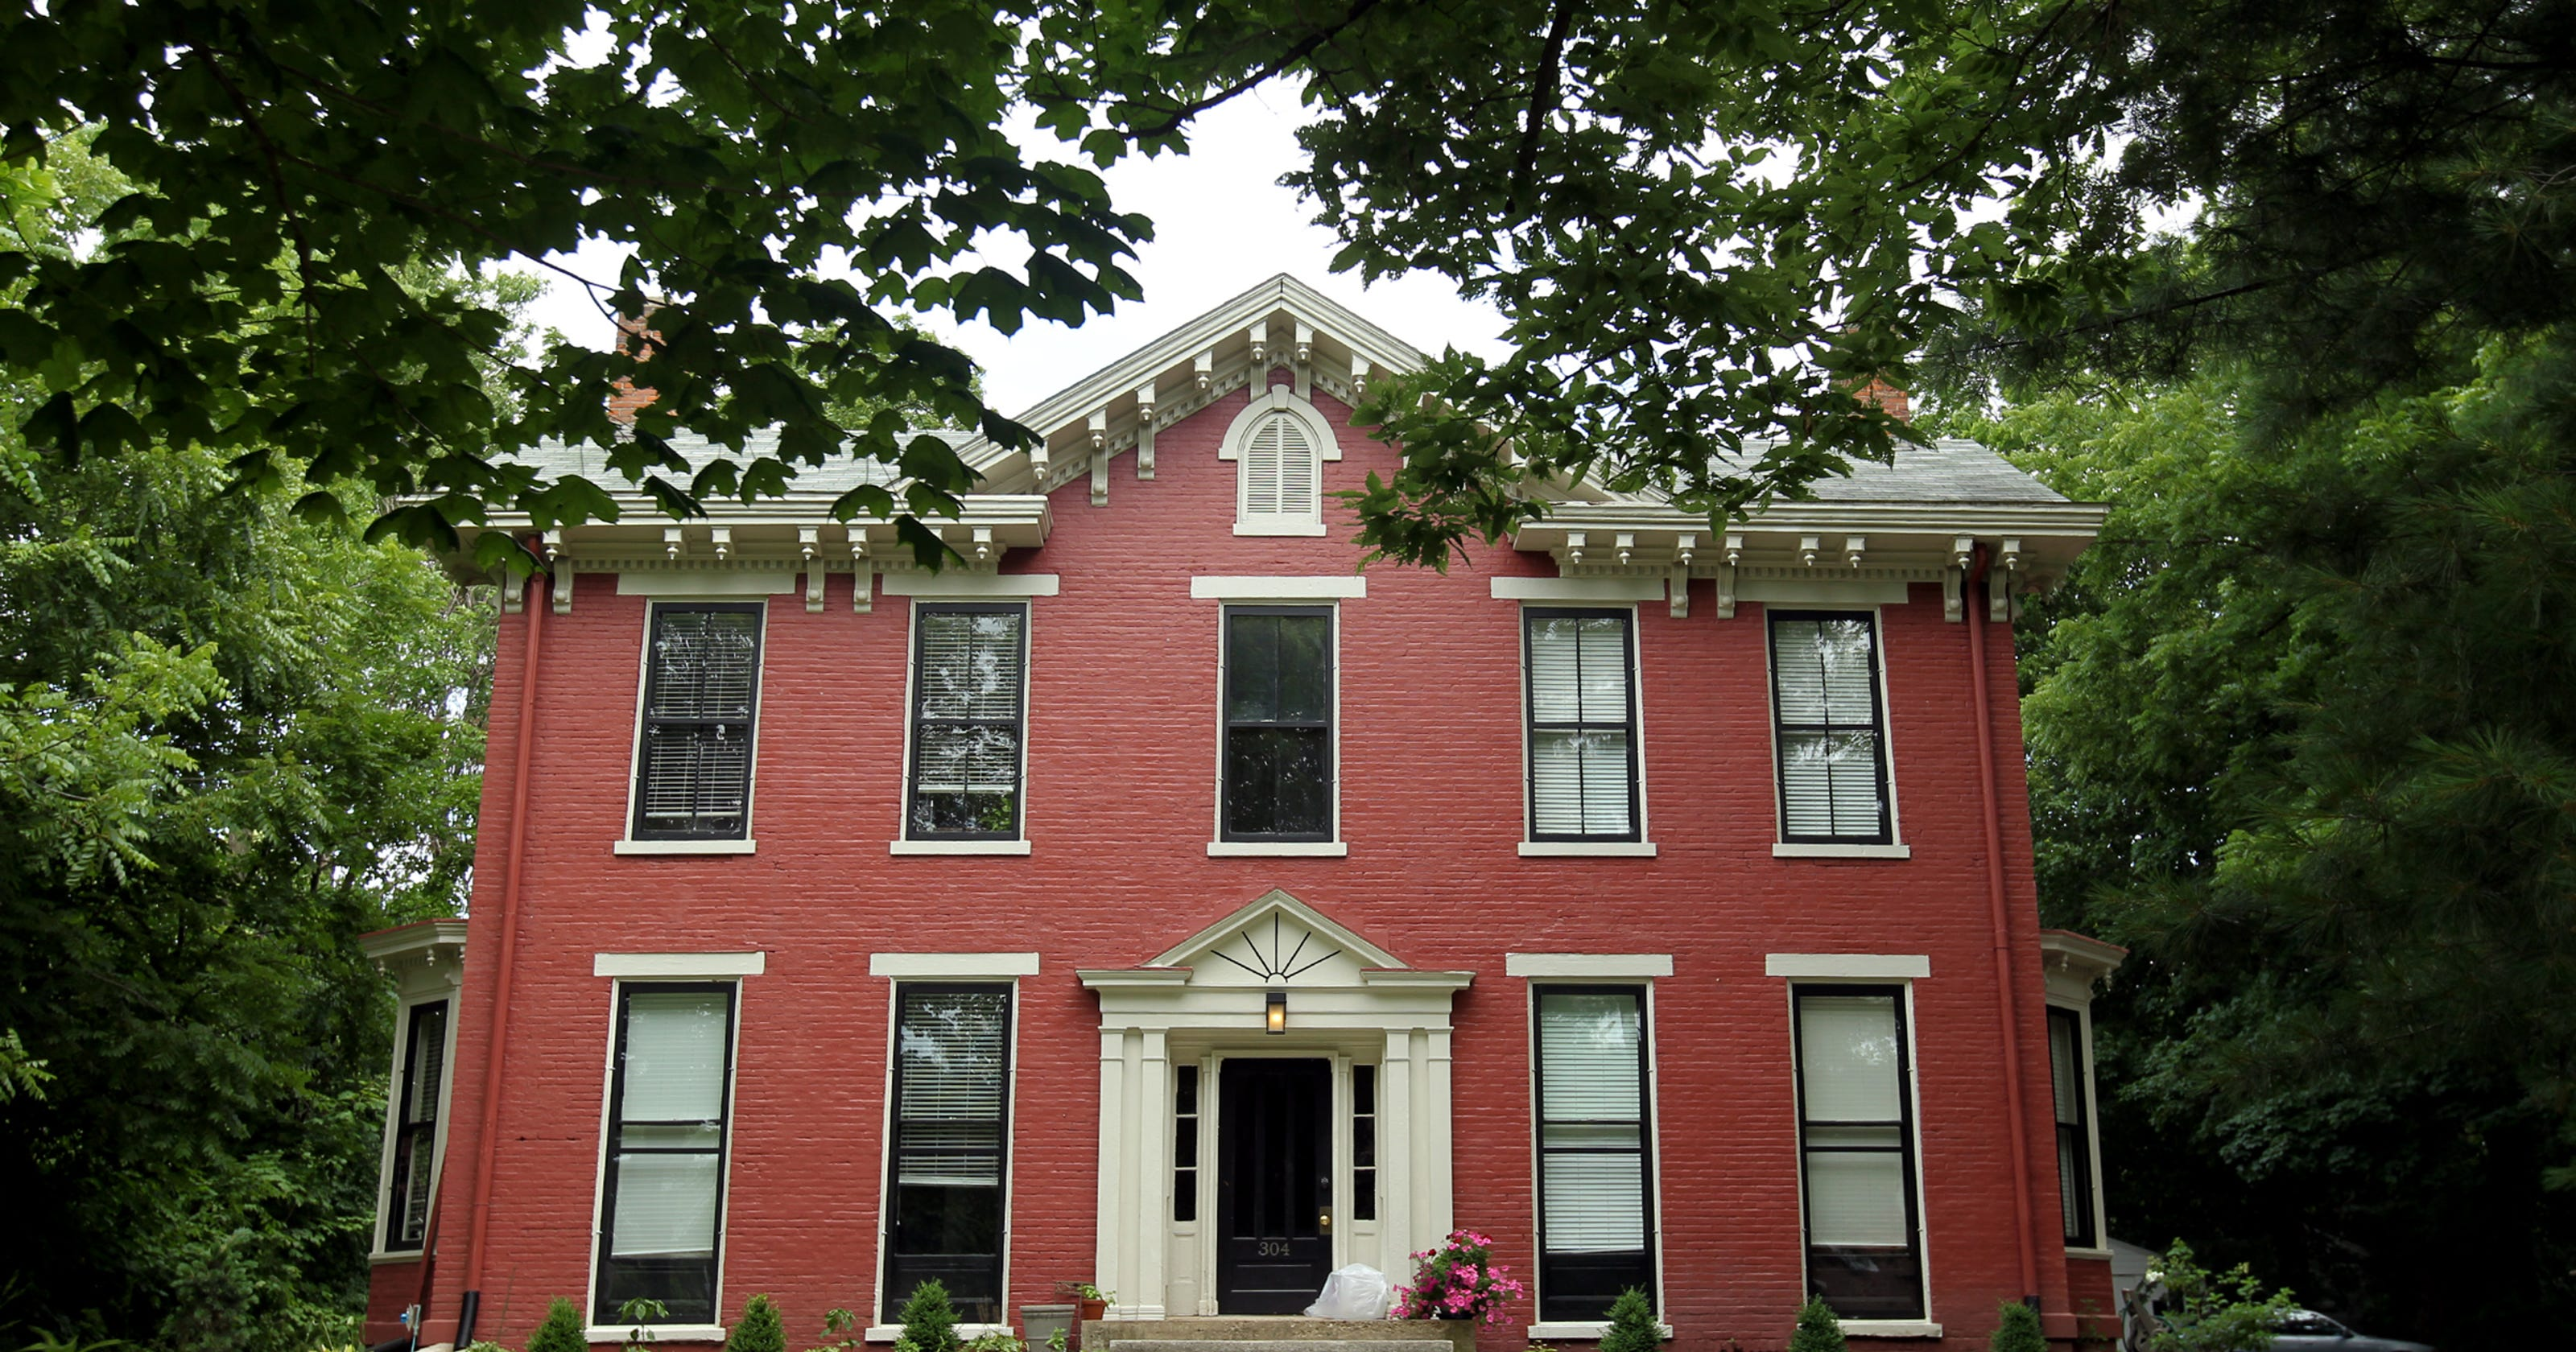 Restoration Revives Historic Iowa City Homes